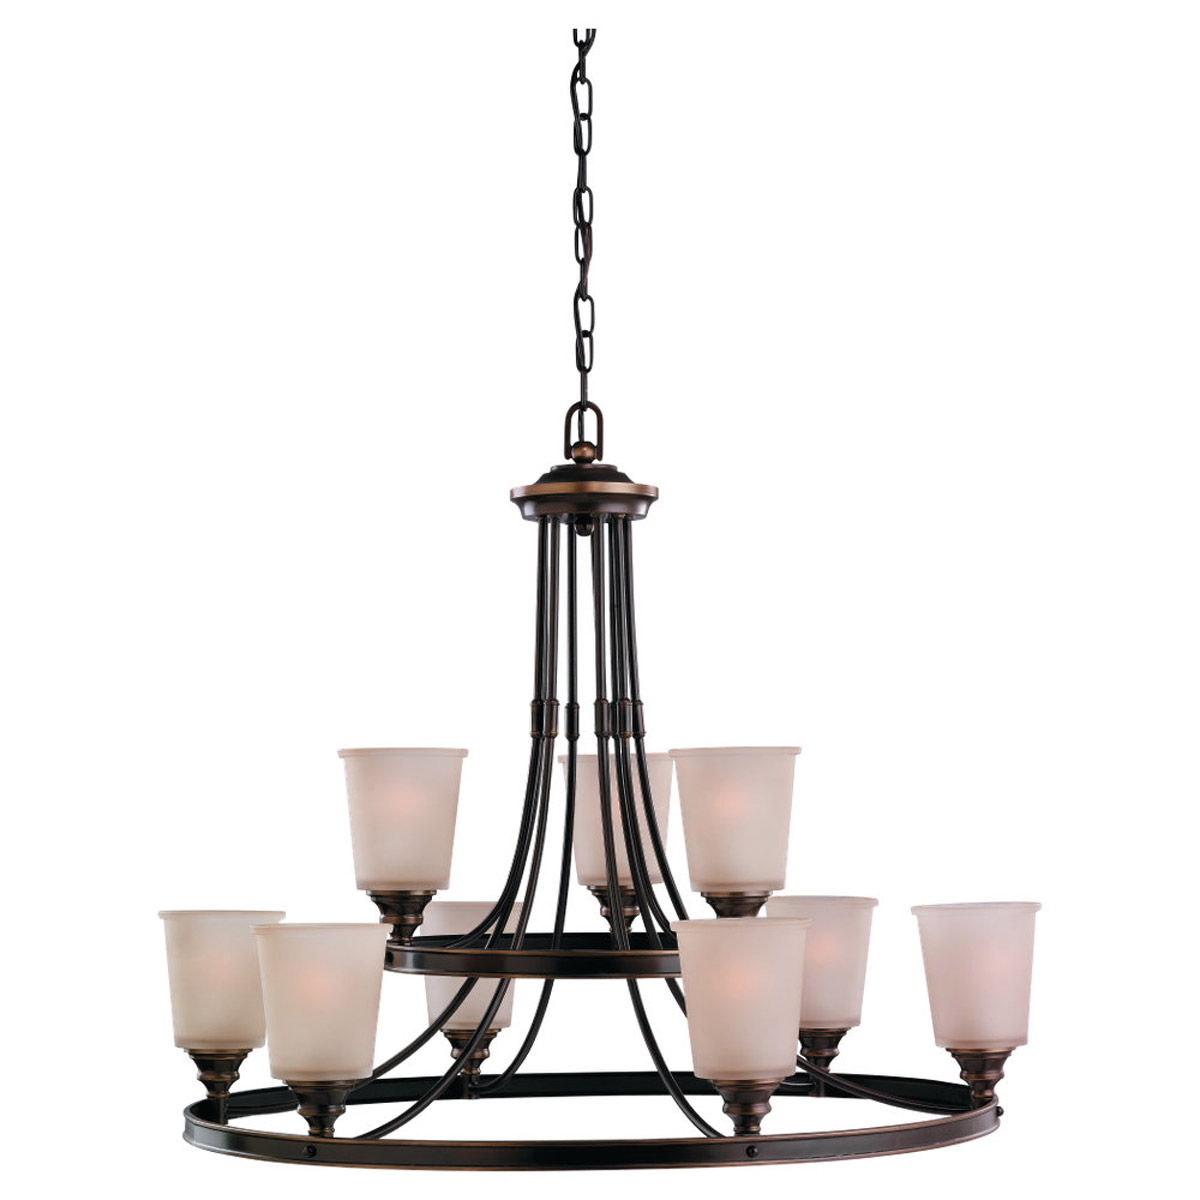 Sea Gull Lighting Warwick 9 Light Chandelier in Vintage Bronze 31332-825 photo